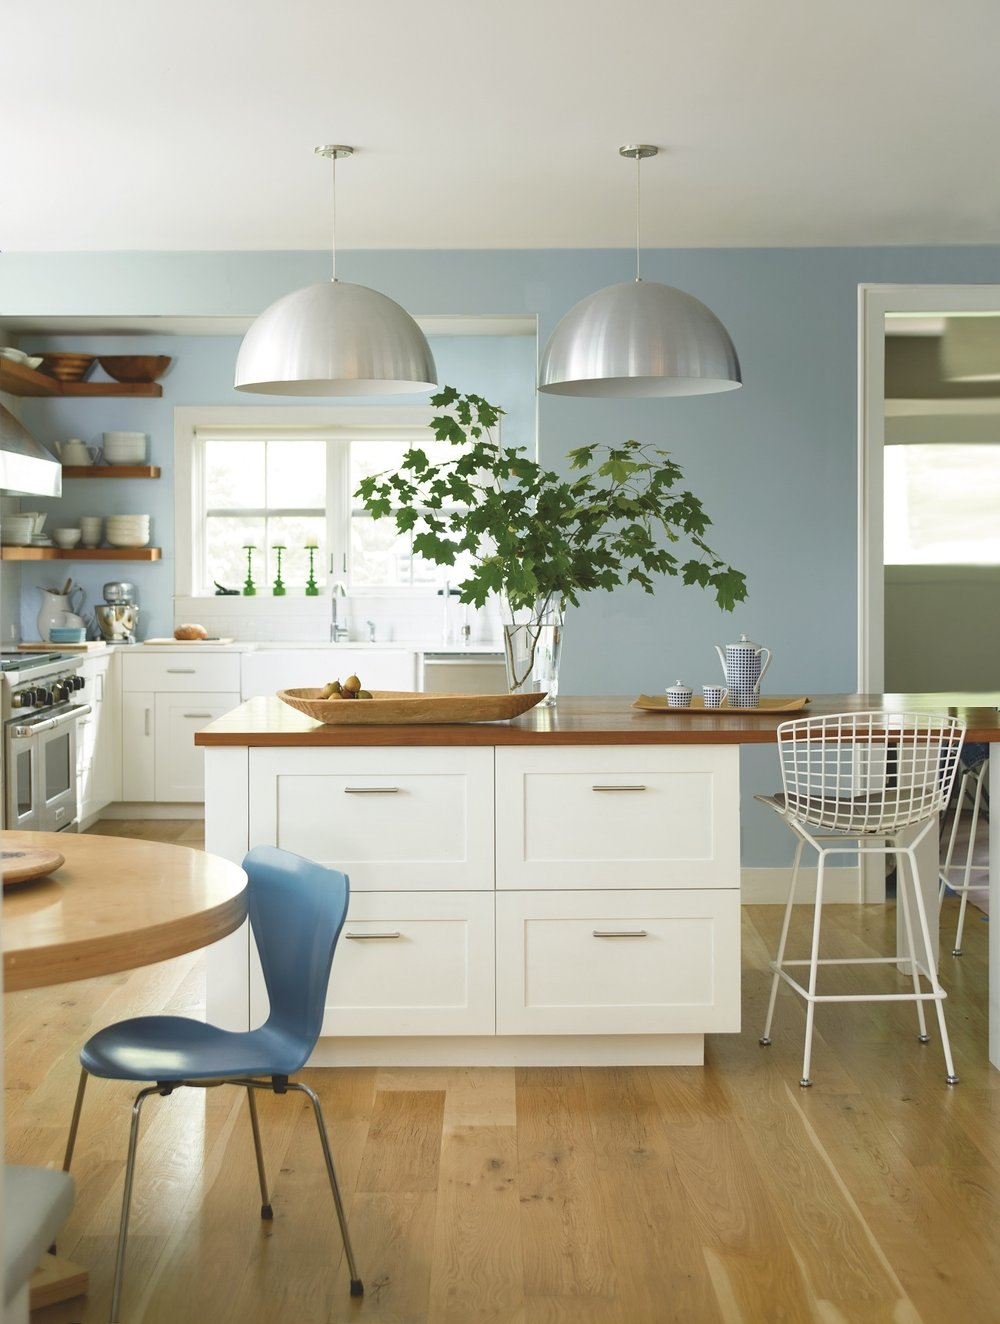 There is a lot to consider in a kitchen renovation: floors, walls, lighting, cabinets. Great light, white cabinets and beautiful blues are the focus in this coastal-inspired kitchen. Near wall in smoke 2122-40. Far wall in Caribbean Mist 2061-70. Cabinets in Ice Mist OC-67. Photo: Benjamin Moore.